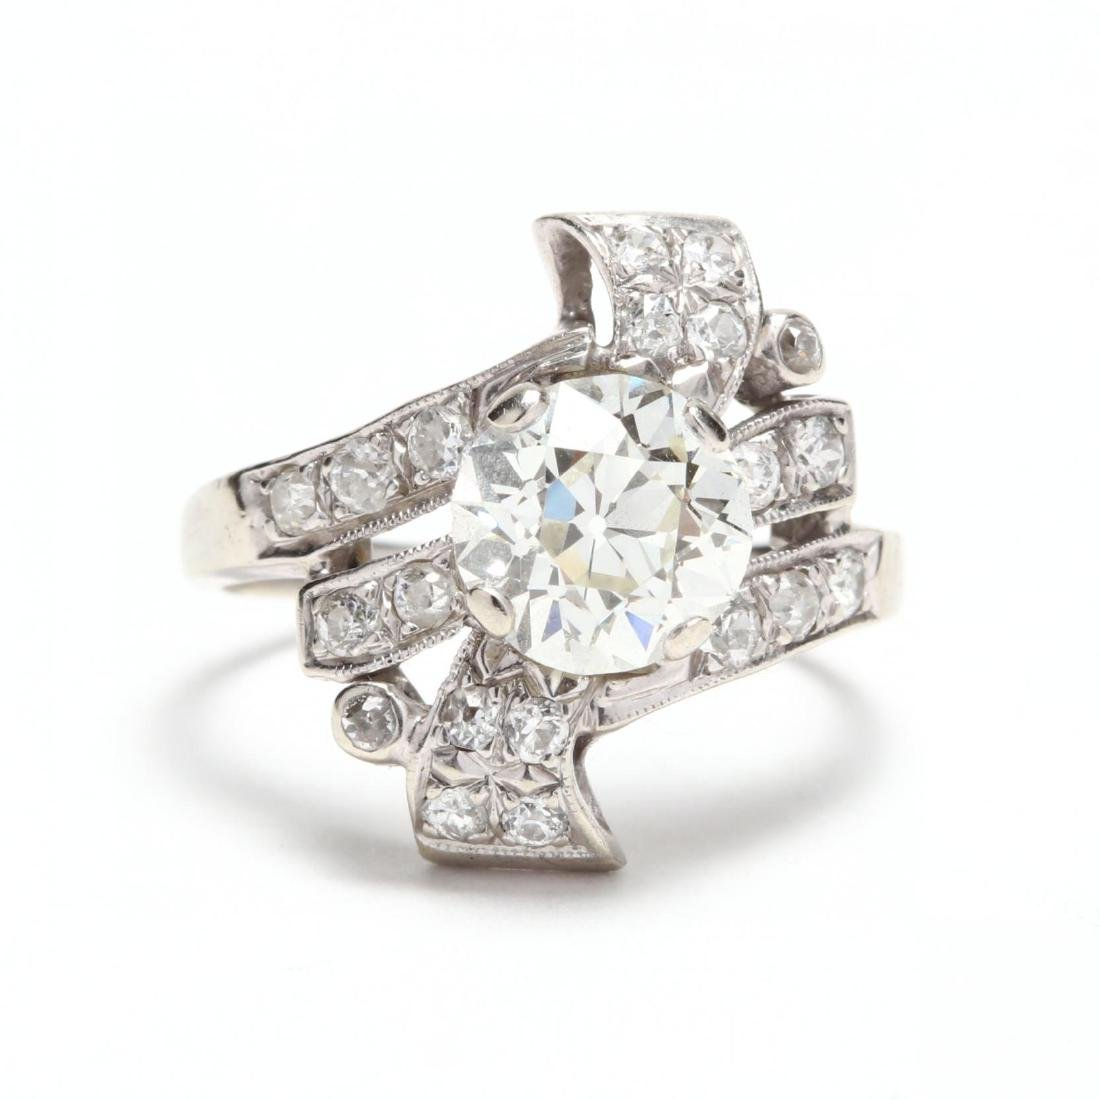 Unmounted Old European Cut Diamond with 14KT White Gold